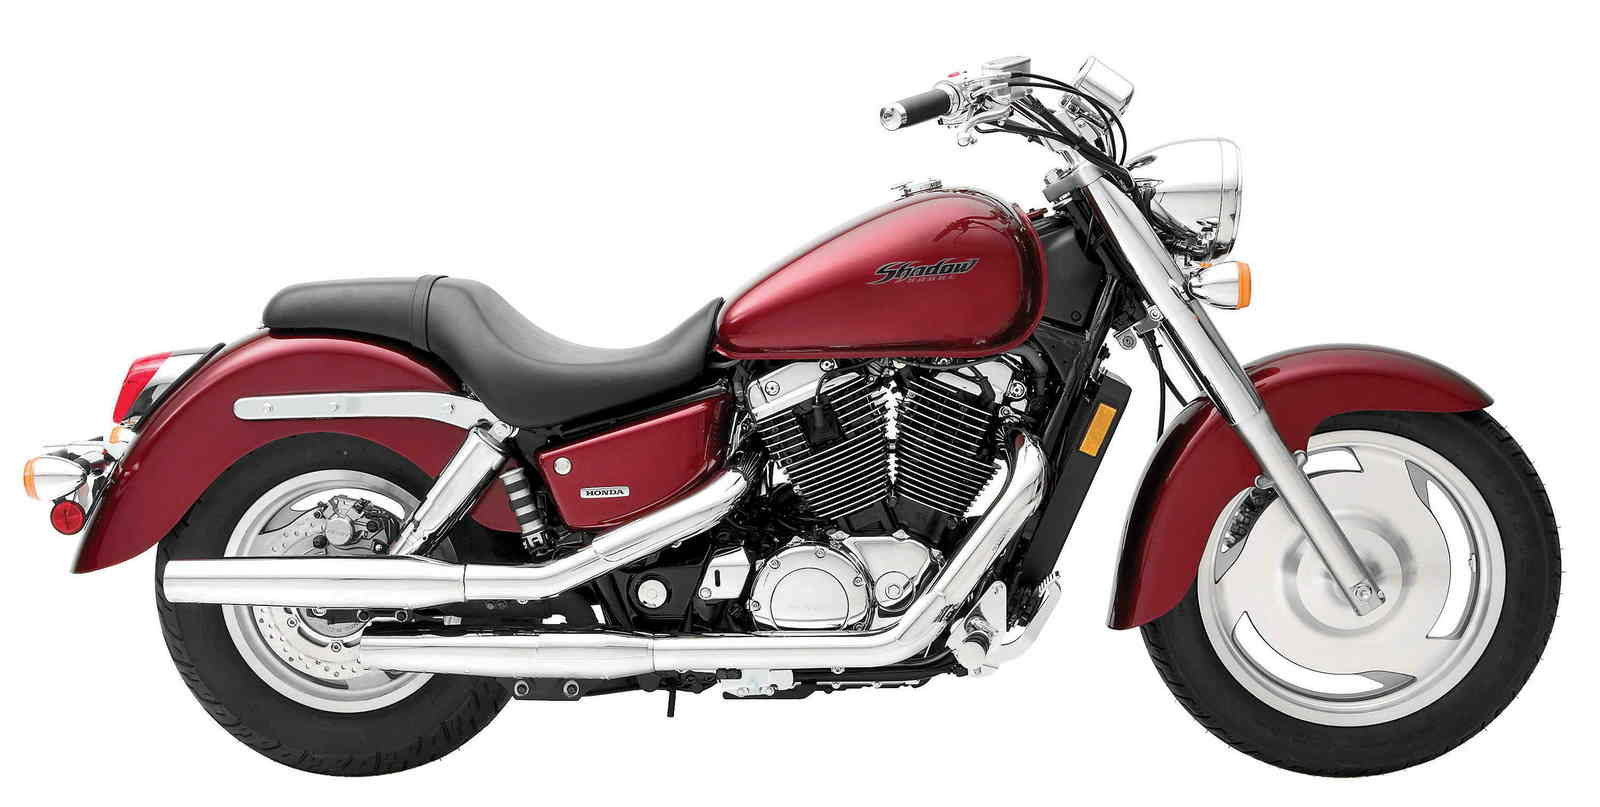 2007 Honda Shadow Sabre #1